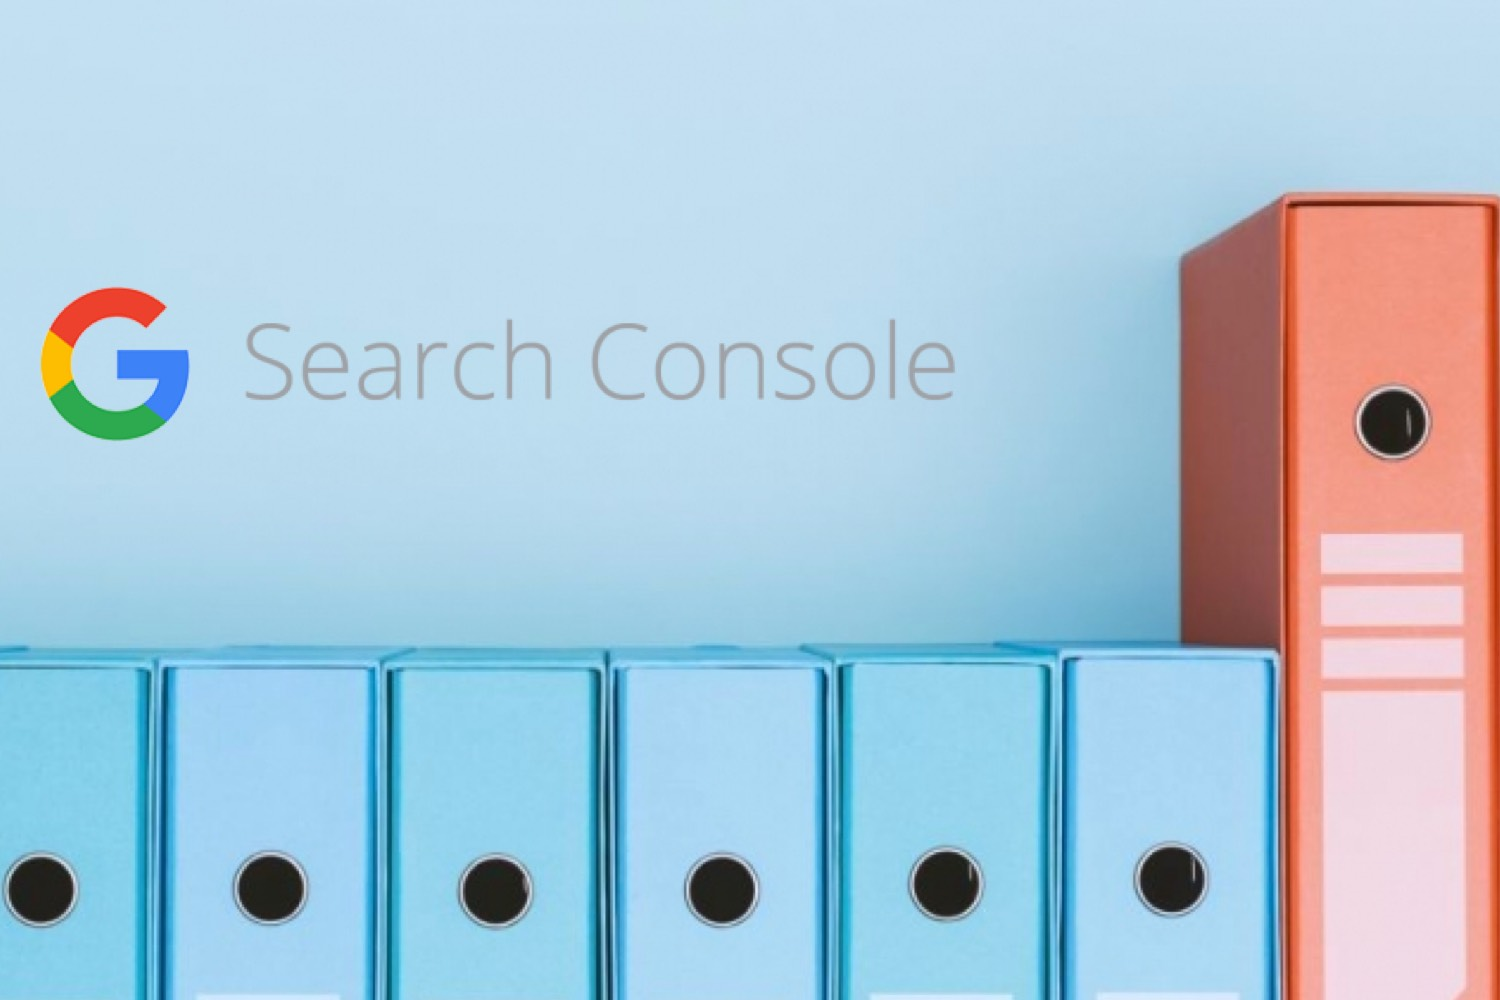 google search console, search console, marketing branding